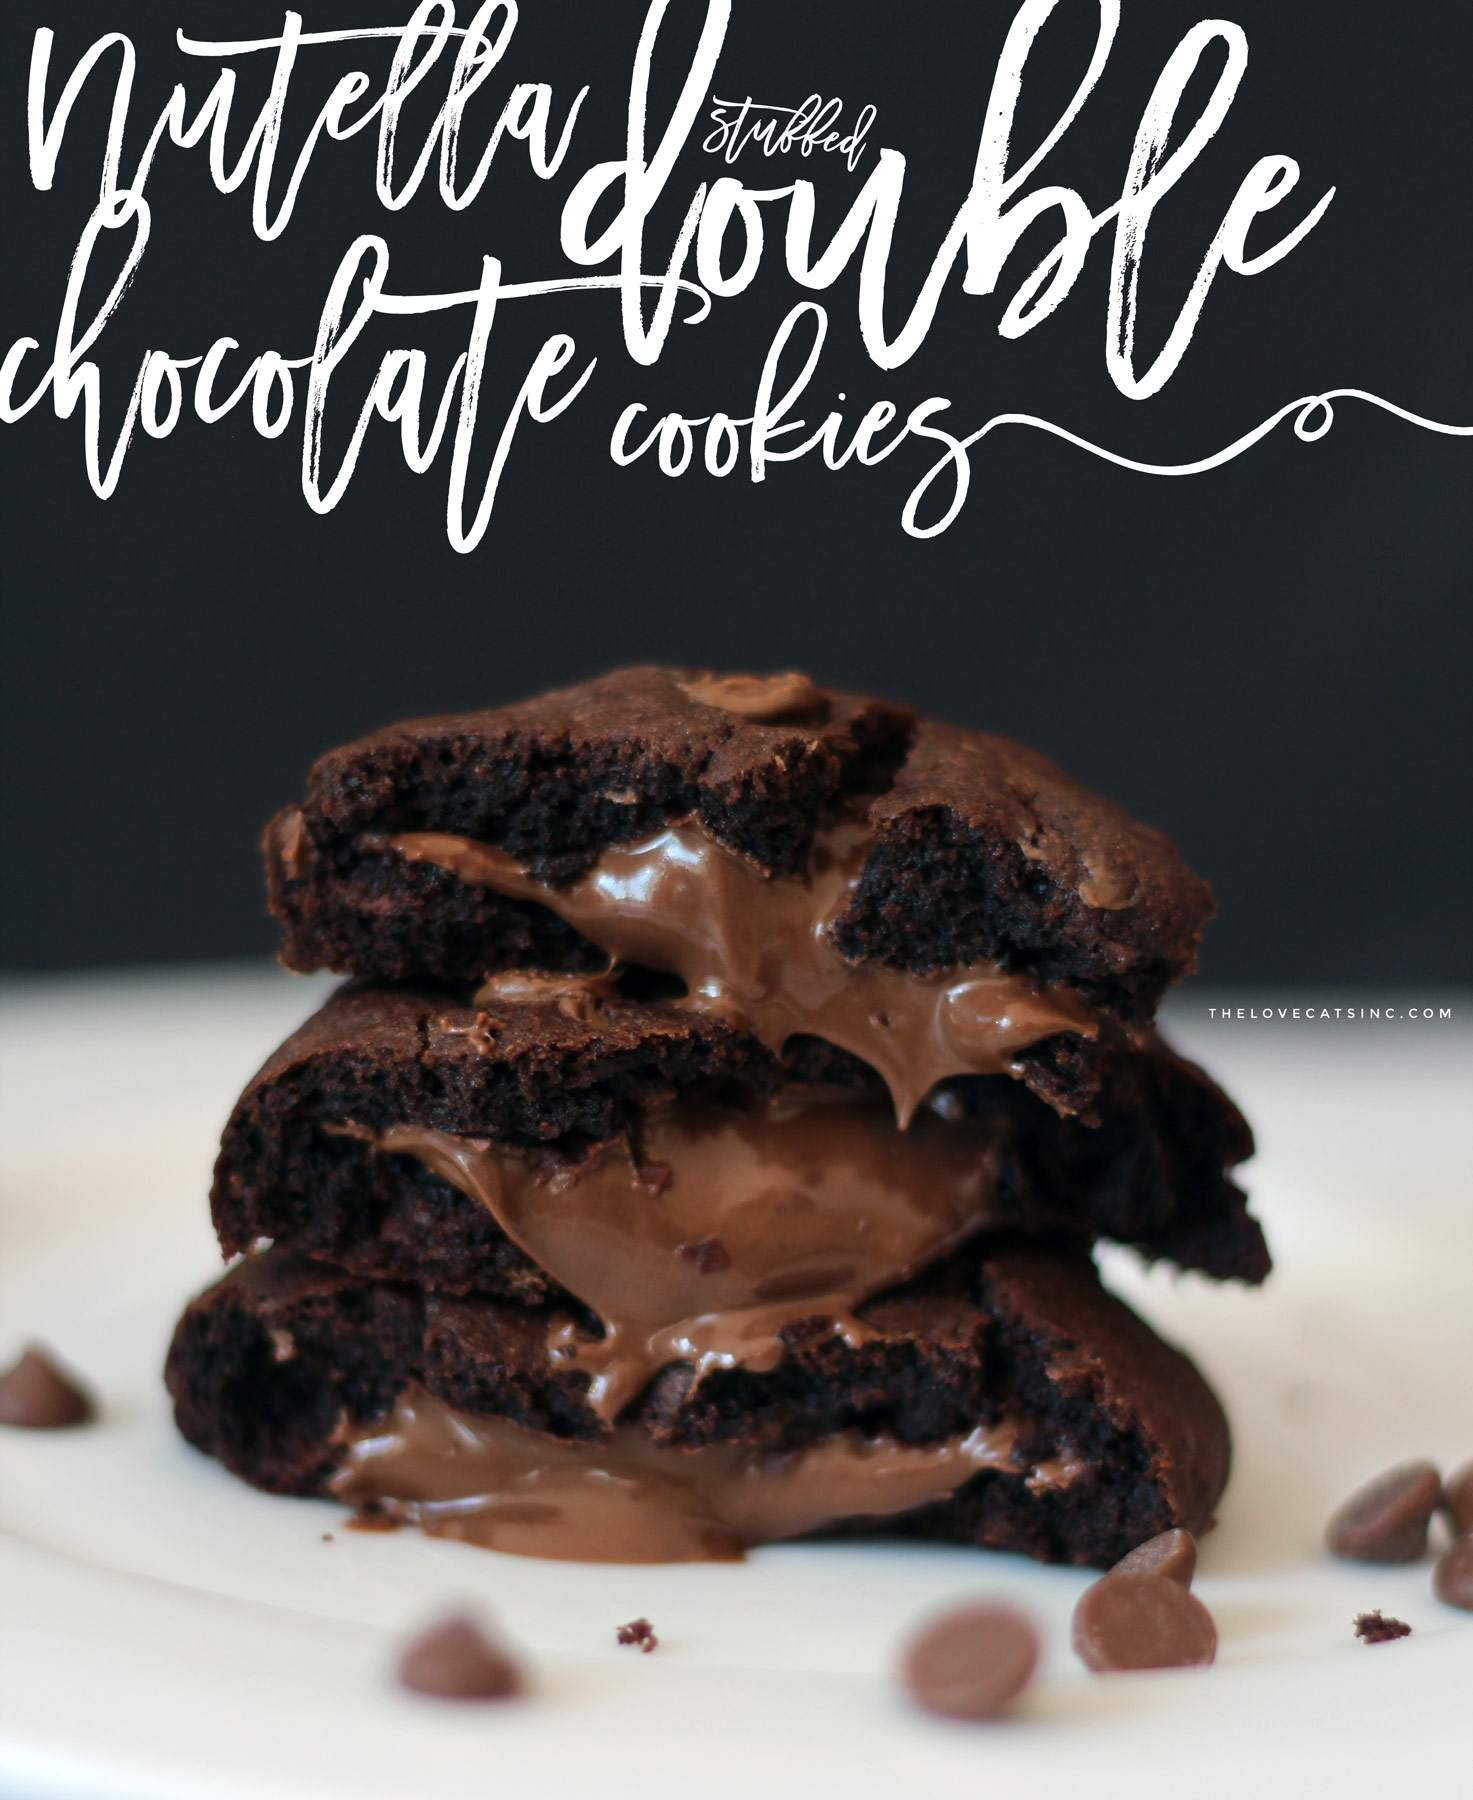 nutella-stuffed-double-chocolate-cookies-recipe-melt-in-the-middle-cookie-6